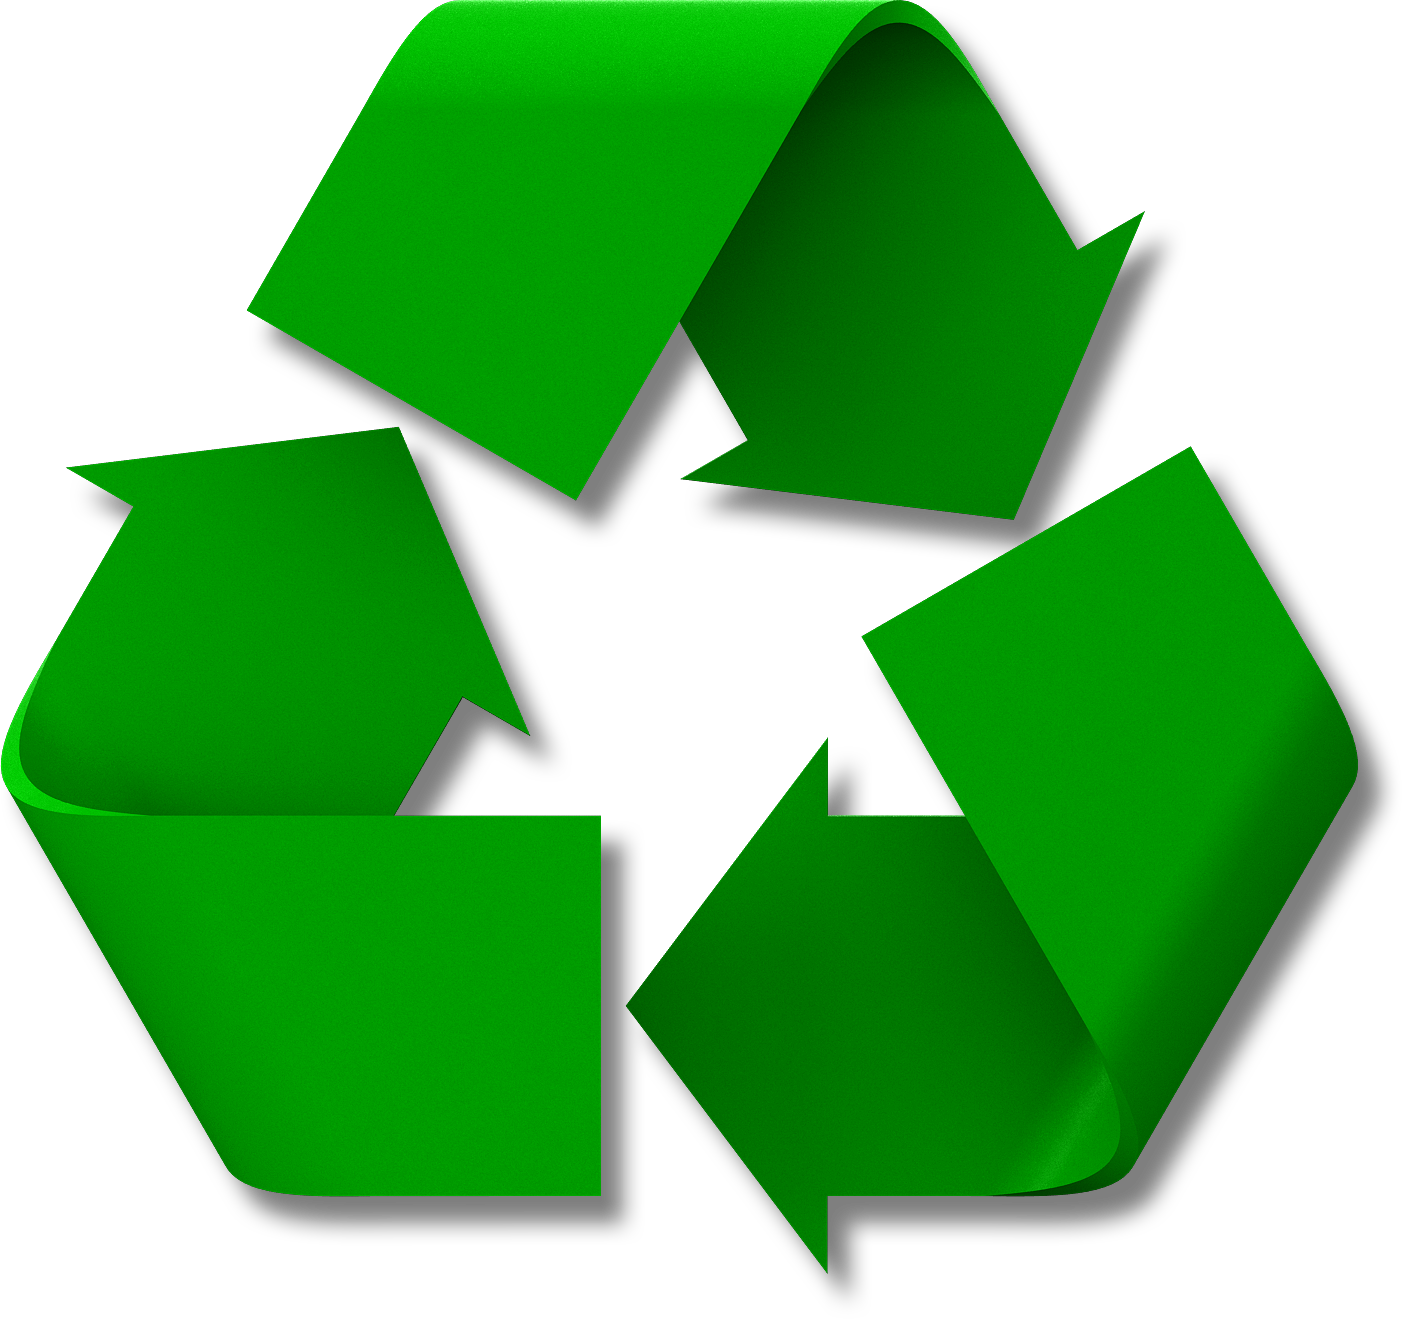 recycle clipart at getdrawings com free for personal use recycle rh getdrawings com recycling clip art free recycling clip art images